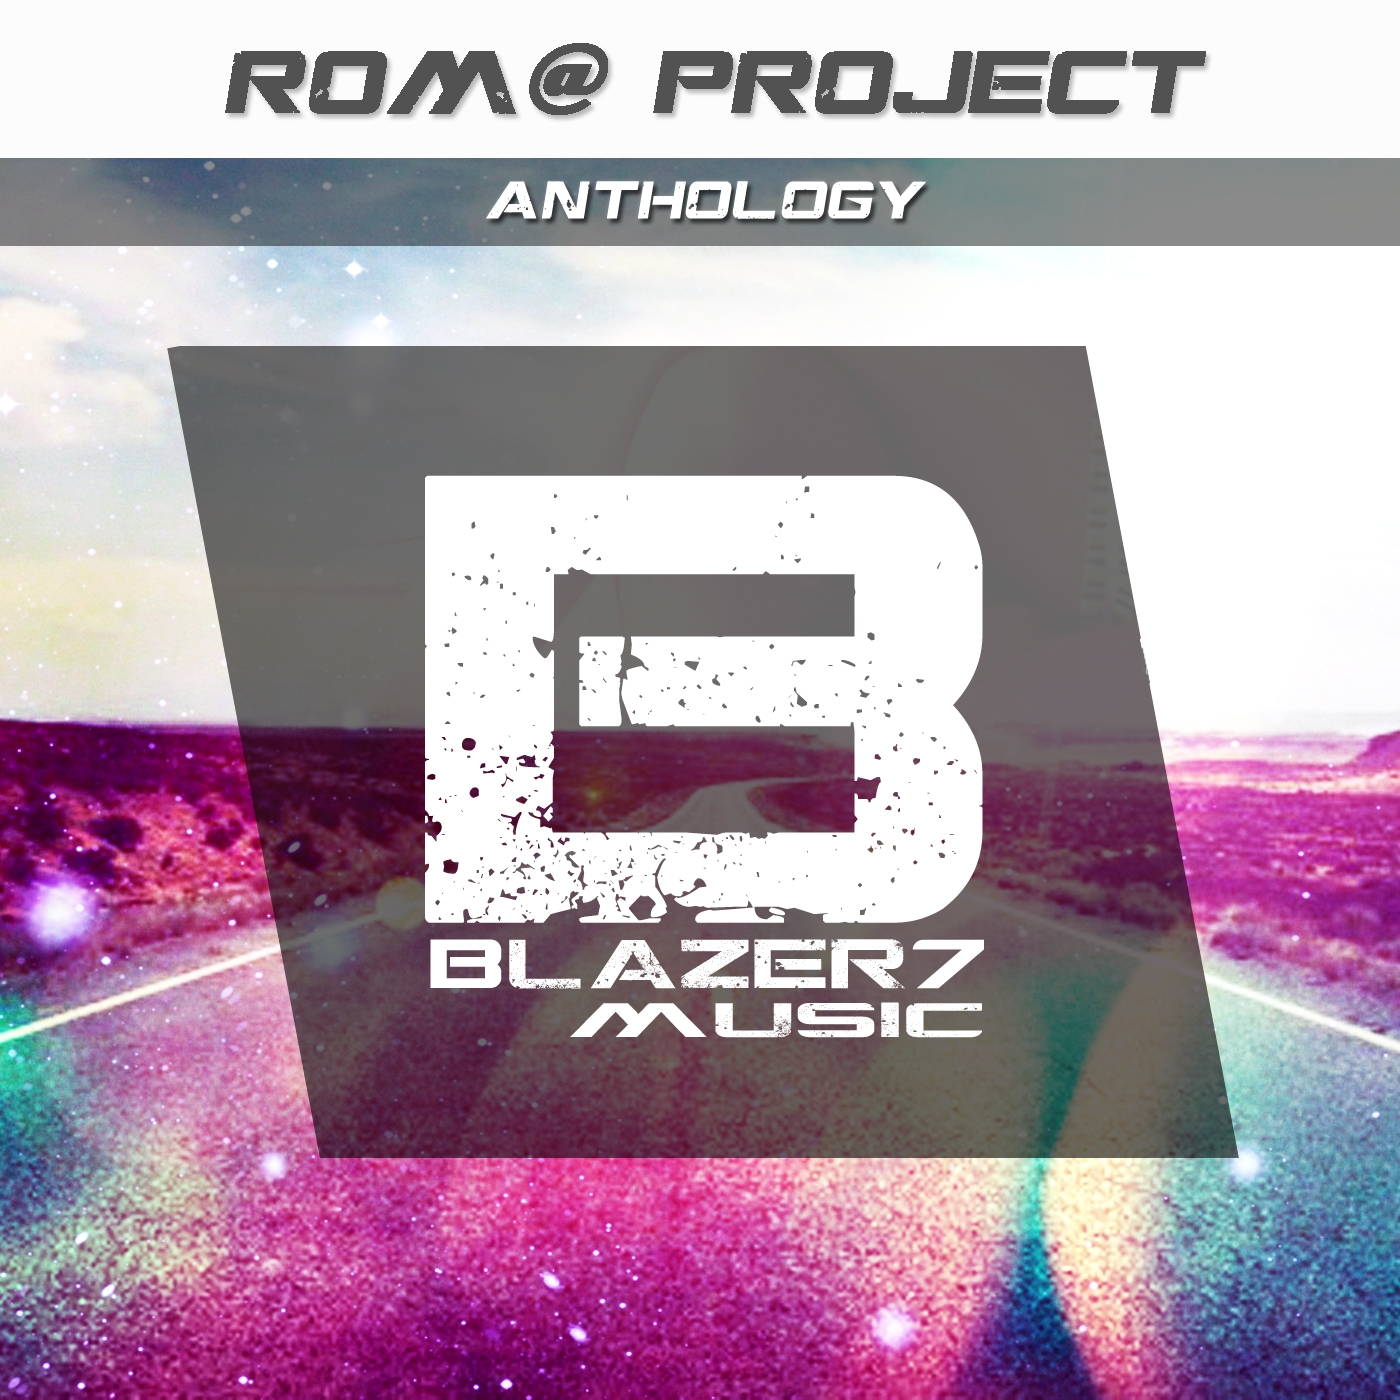 Rom@ Project - On The Move (K.S. Project Remix)